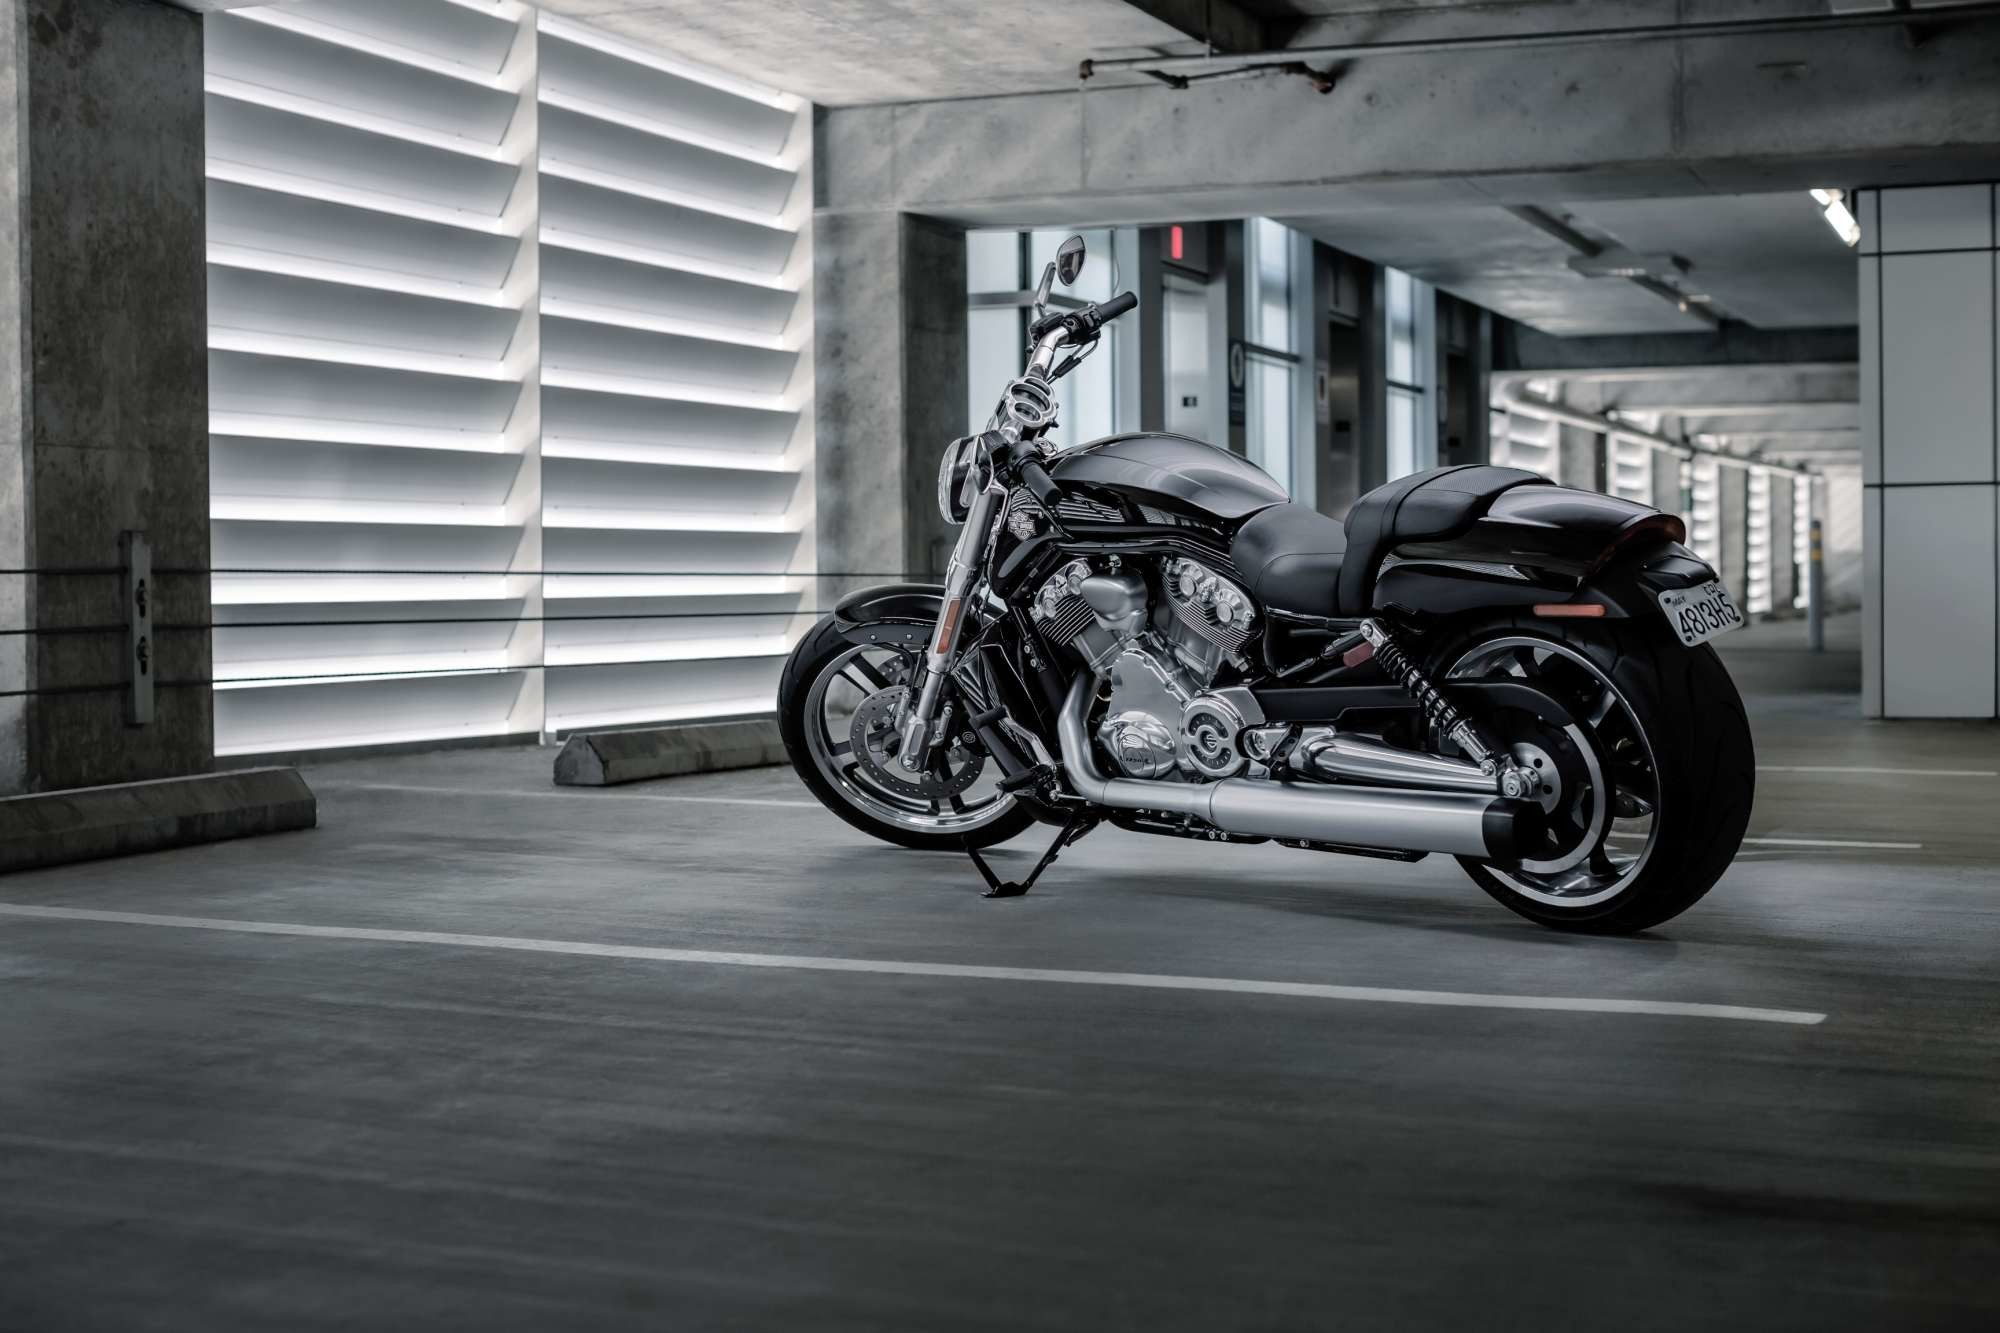 2000x1333 Harley Davidson V Rod Muscle Wallpapers - Wallpaper Cave